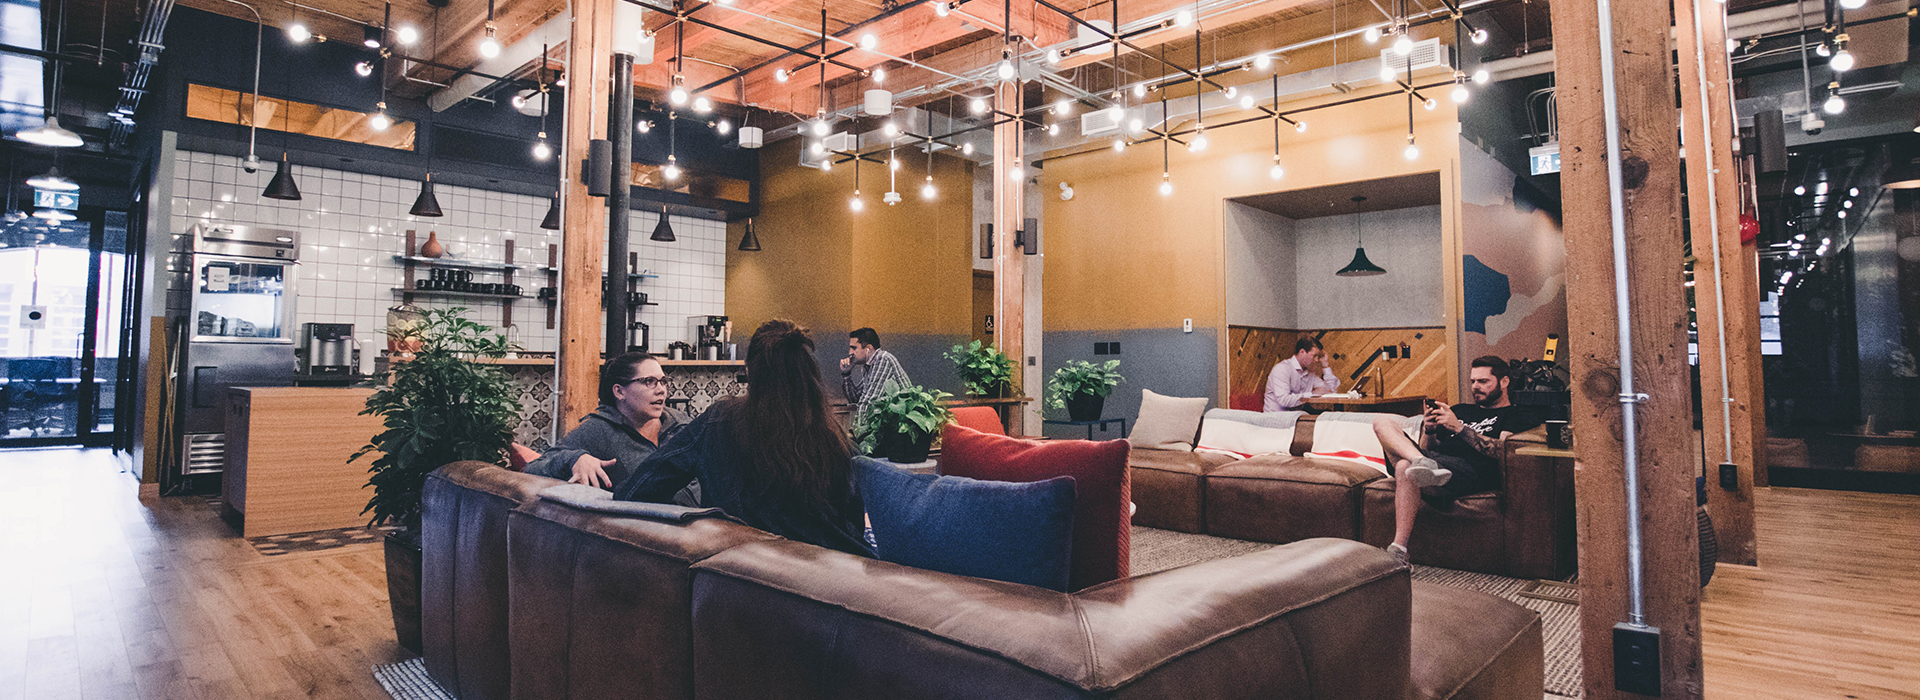 people sitting in the lounge at WeWork in Toronto, Canada